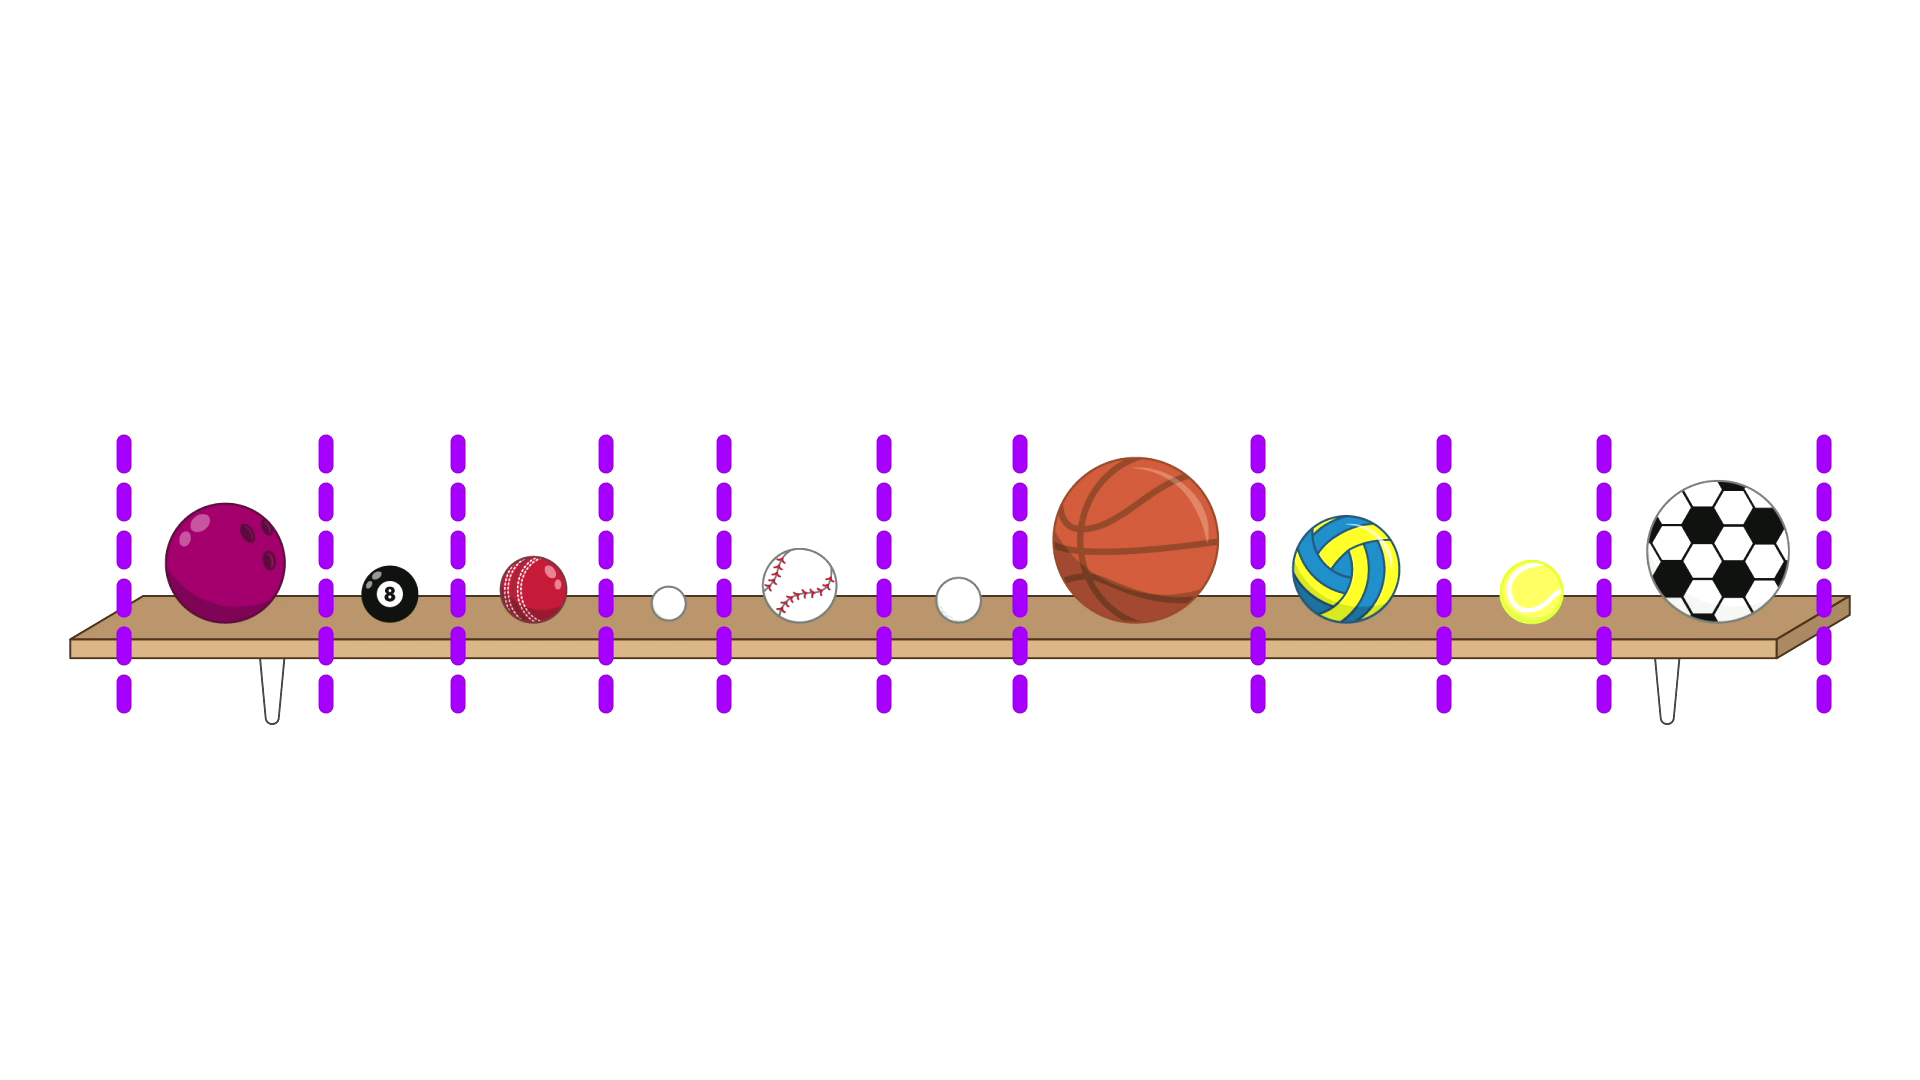 10 balls on a shelf, split into 10 sections by dashed purple lines. The balls are, in order, a bowling ball, a pool ball, a cricket ball, a ping pong ball, a baseball, a golf ball, a basketball, a netball, a tennis ball, and a football (soccer ball).